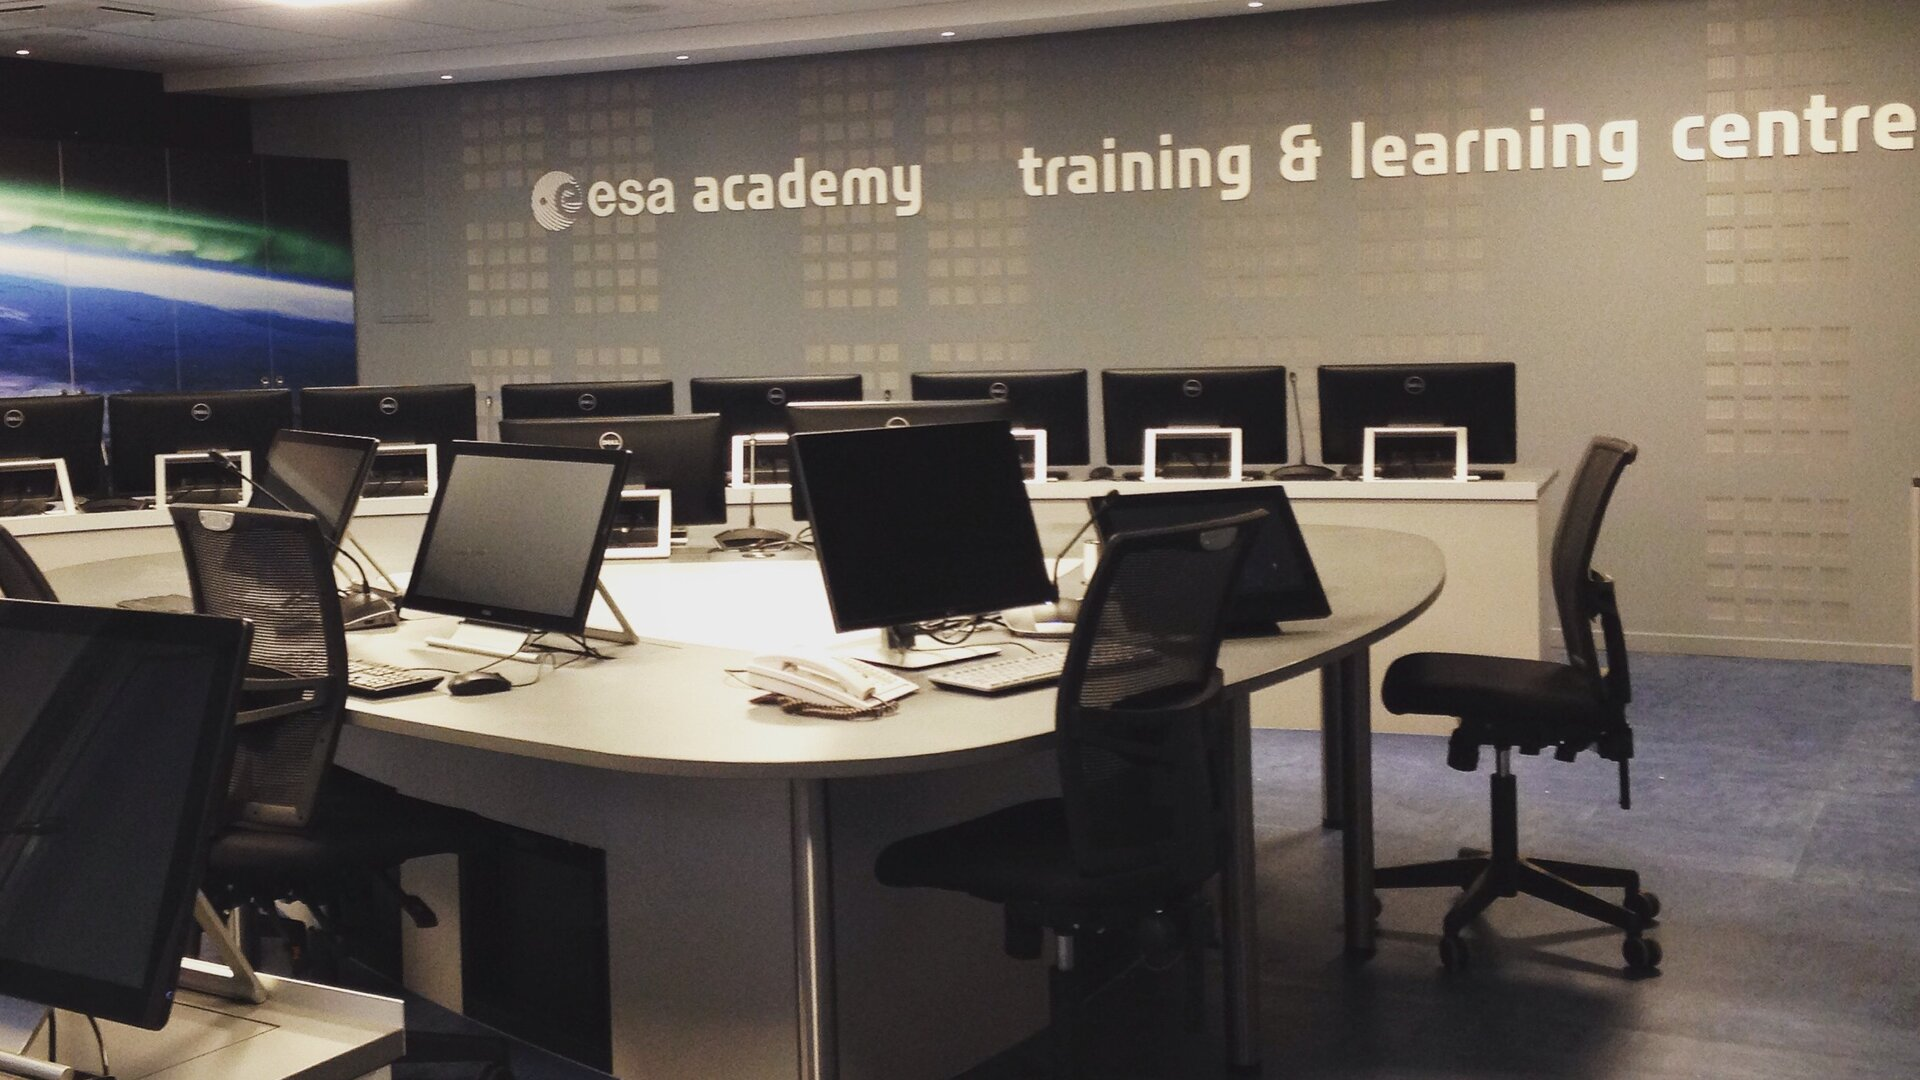 The New ESA Academy Training and Learning Centre in Redu